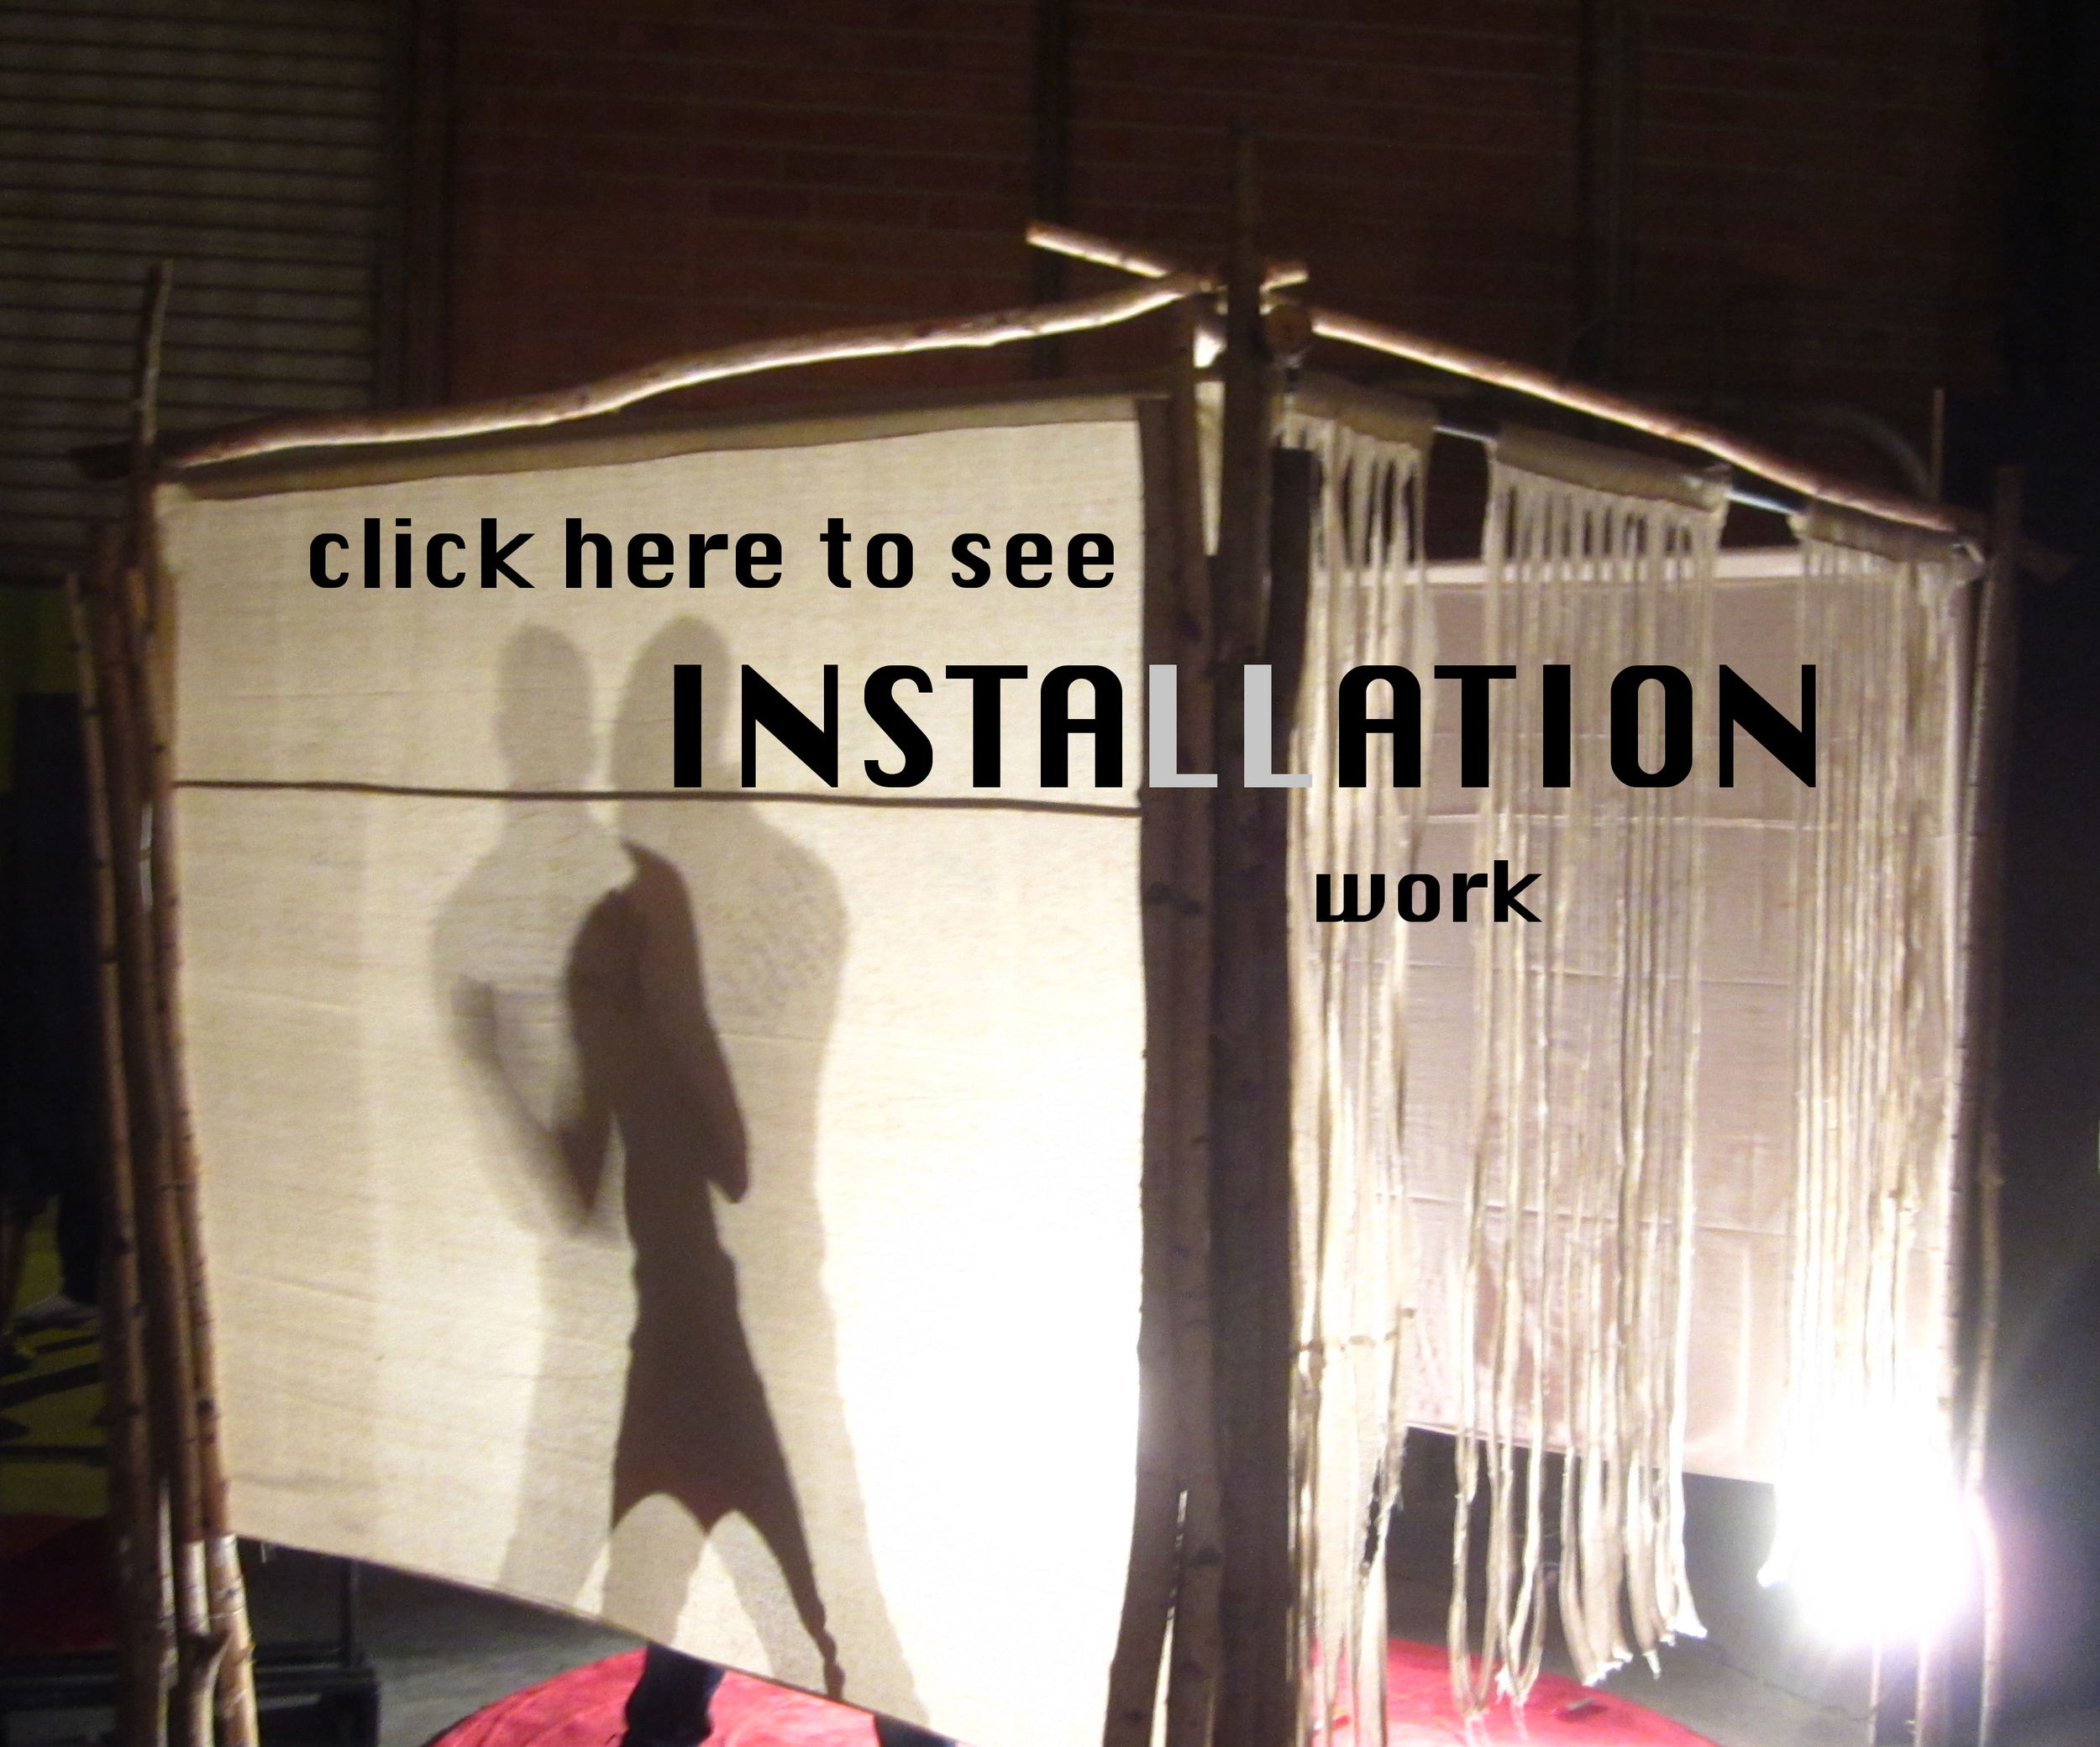 click here for INSTALLATION work.JPG